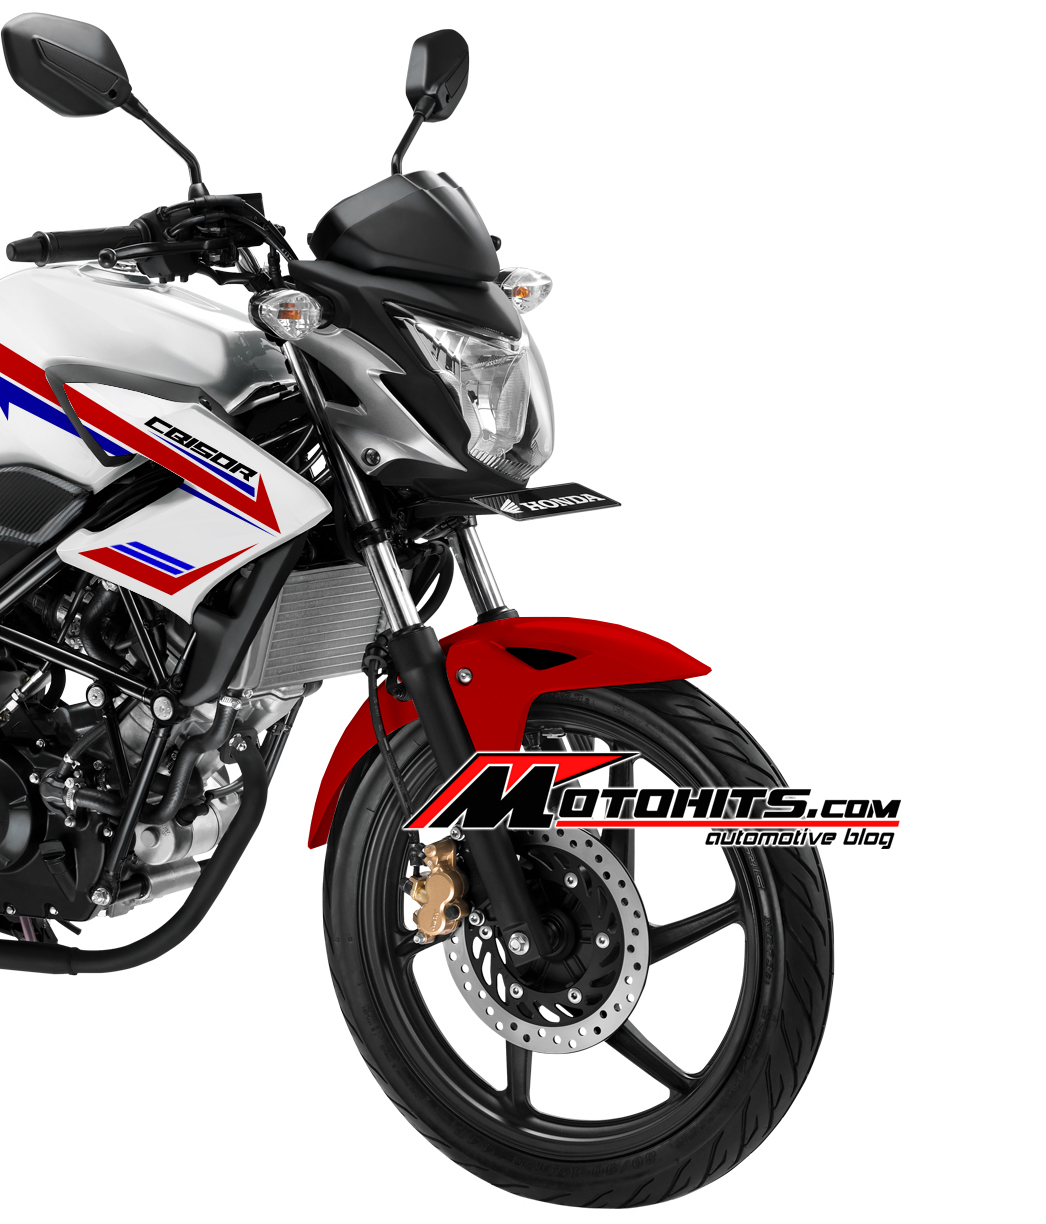 100 Modifikasi Motor Cb150r Warna Putih Biru Modifikasi Motor